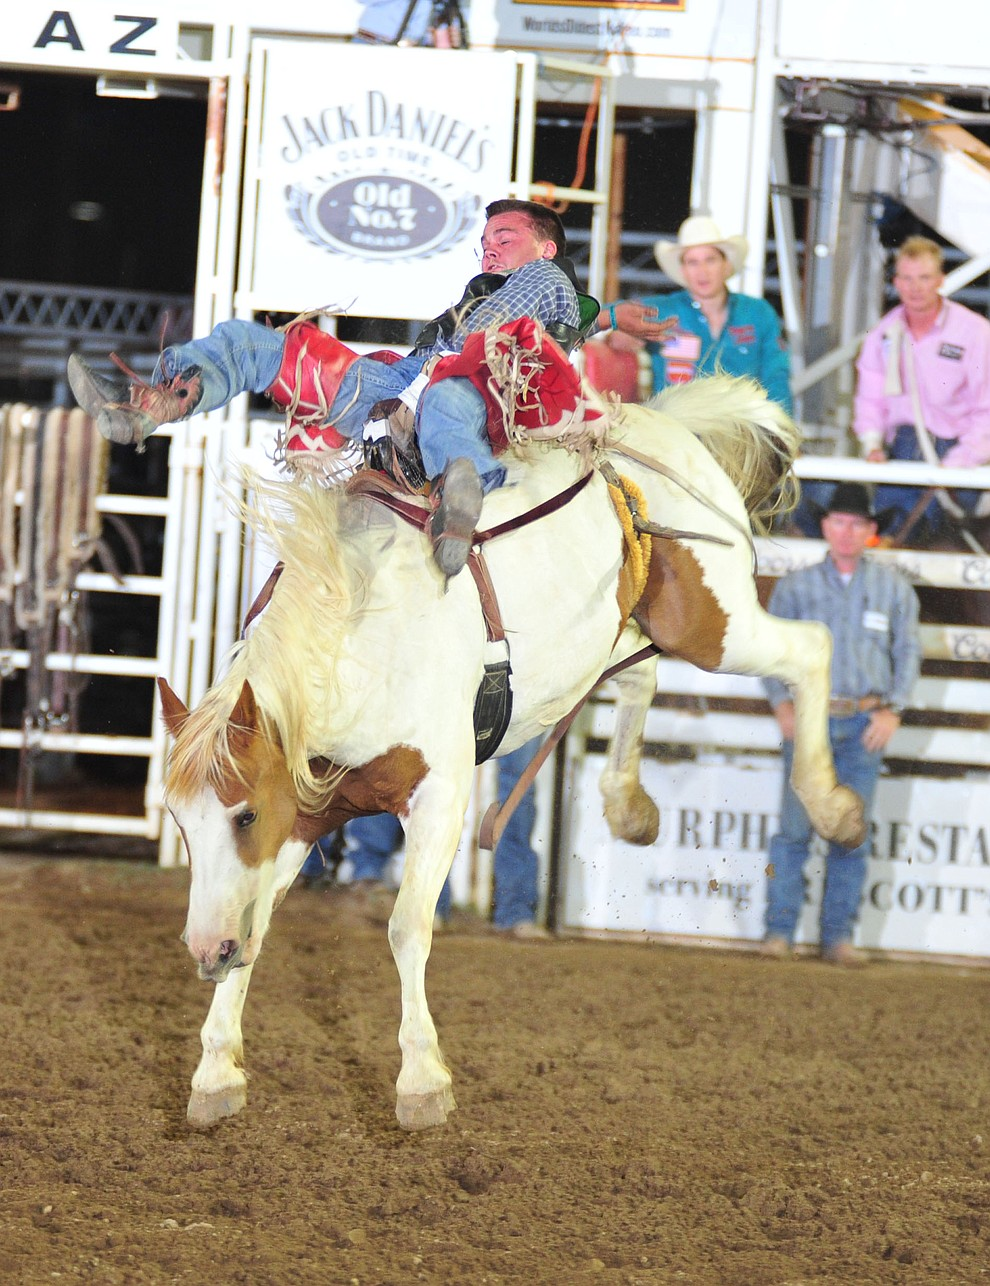 Shane O'Connell scores 86 on Little Linda in the Bareback during the second performance of the Prescott Frontier Days Rodeo Friday, June 29, 2018.(Les Stukenberg/Courier)